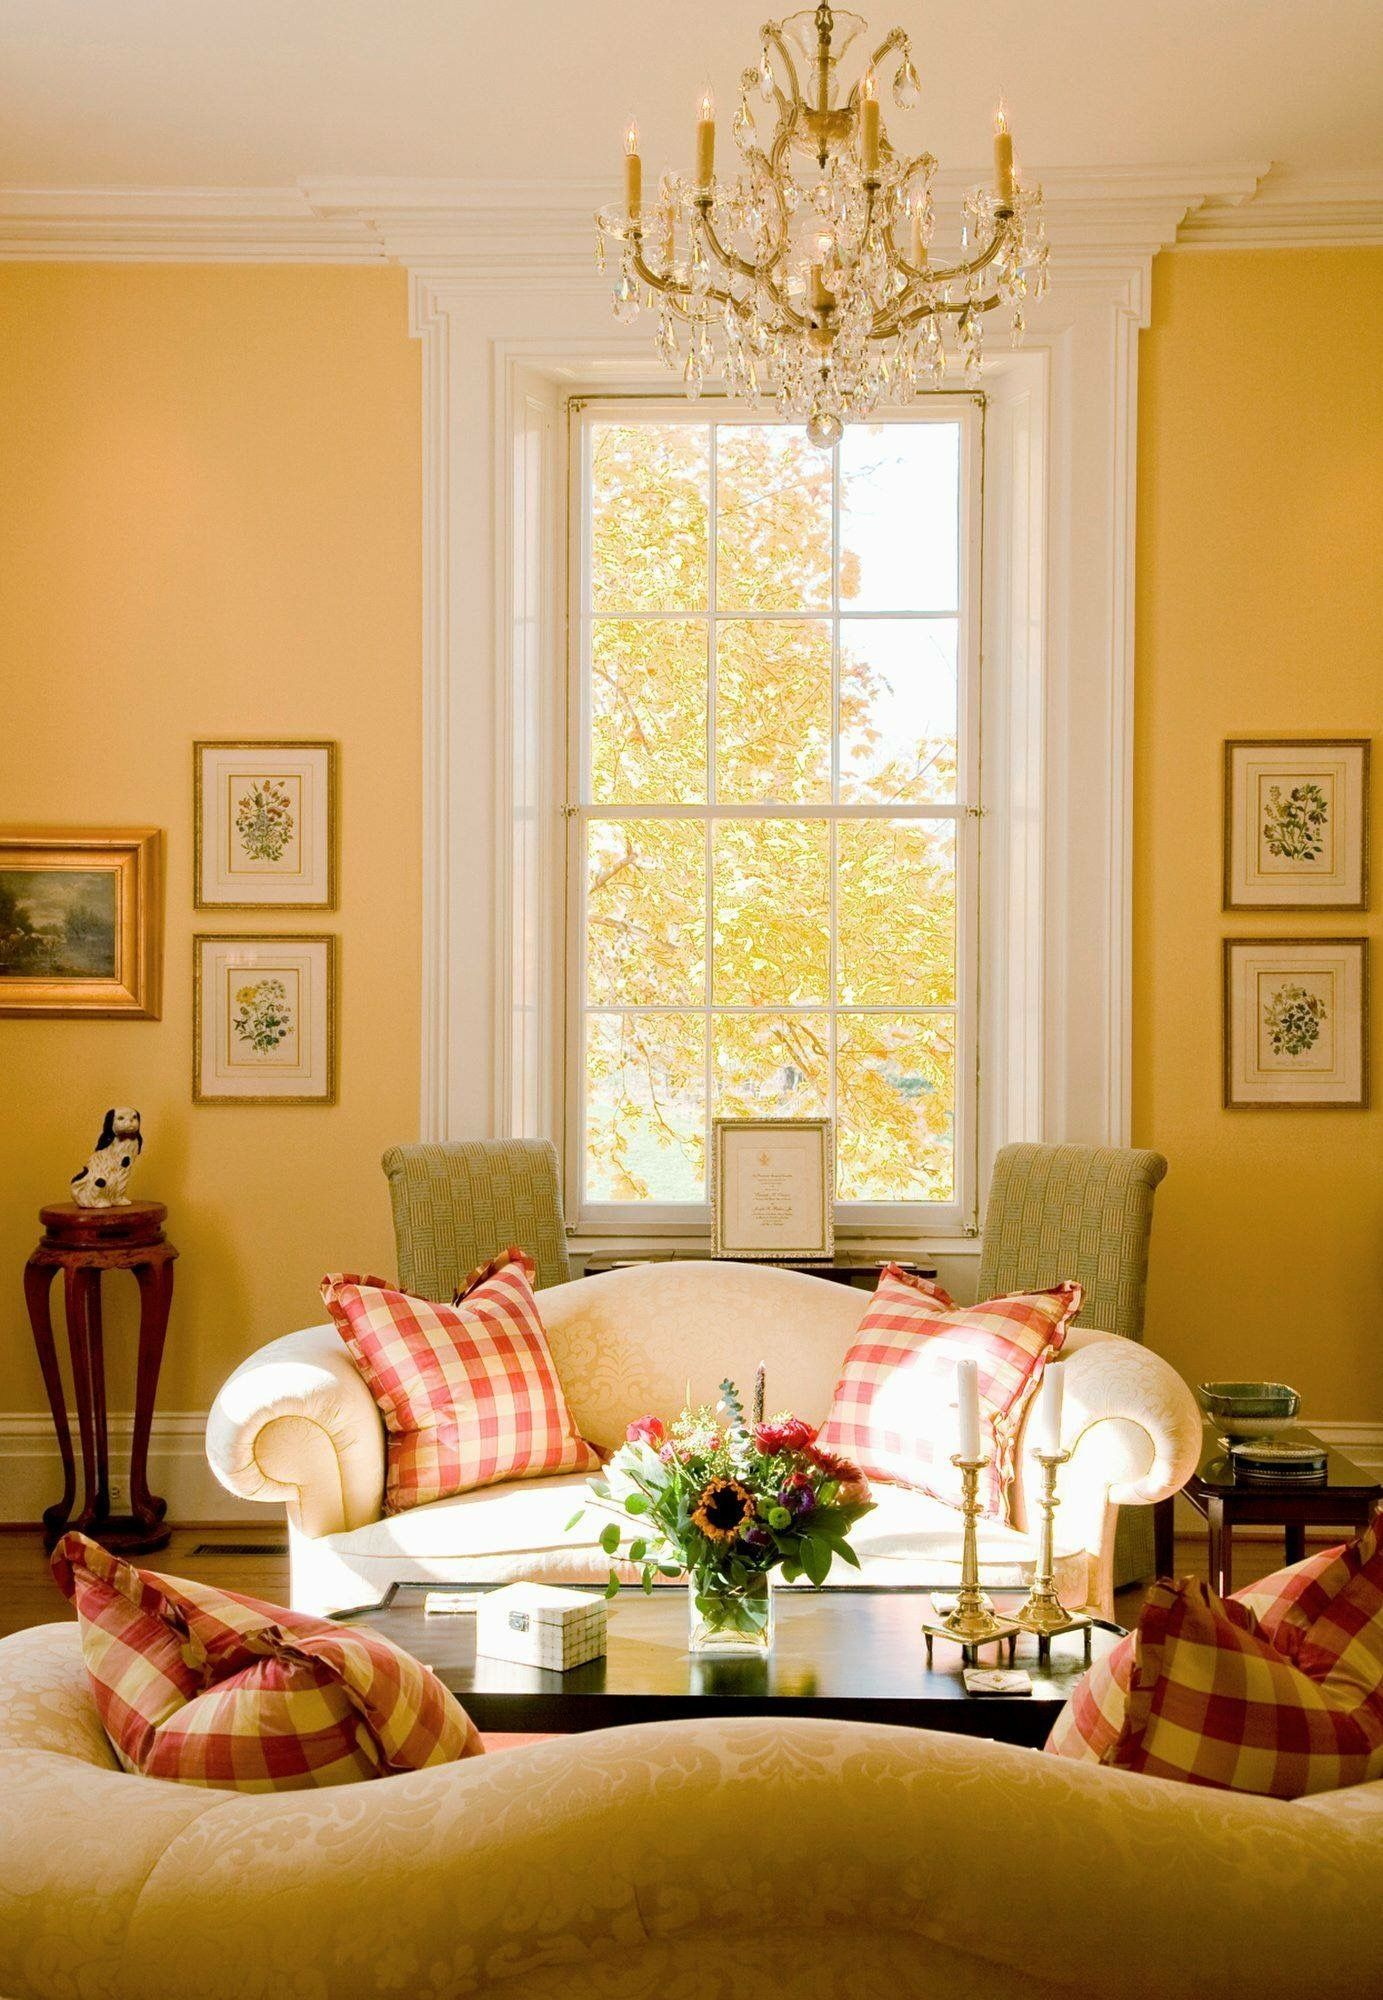 Pin by laura howie on homes   Pinterest   Trim work, Window and Room